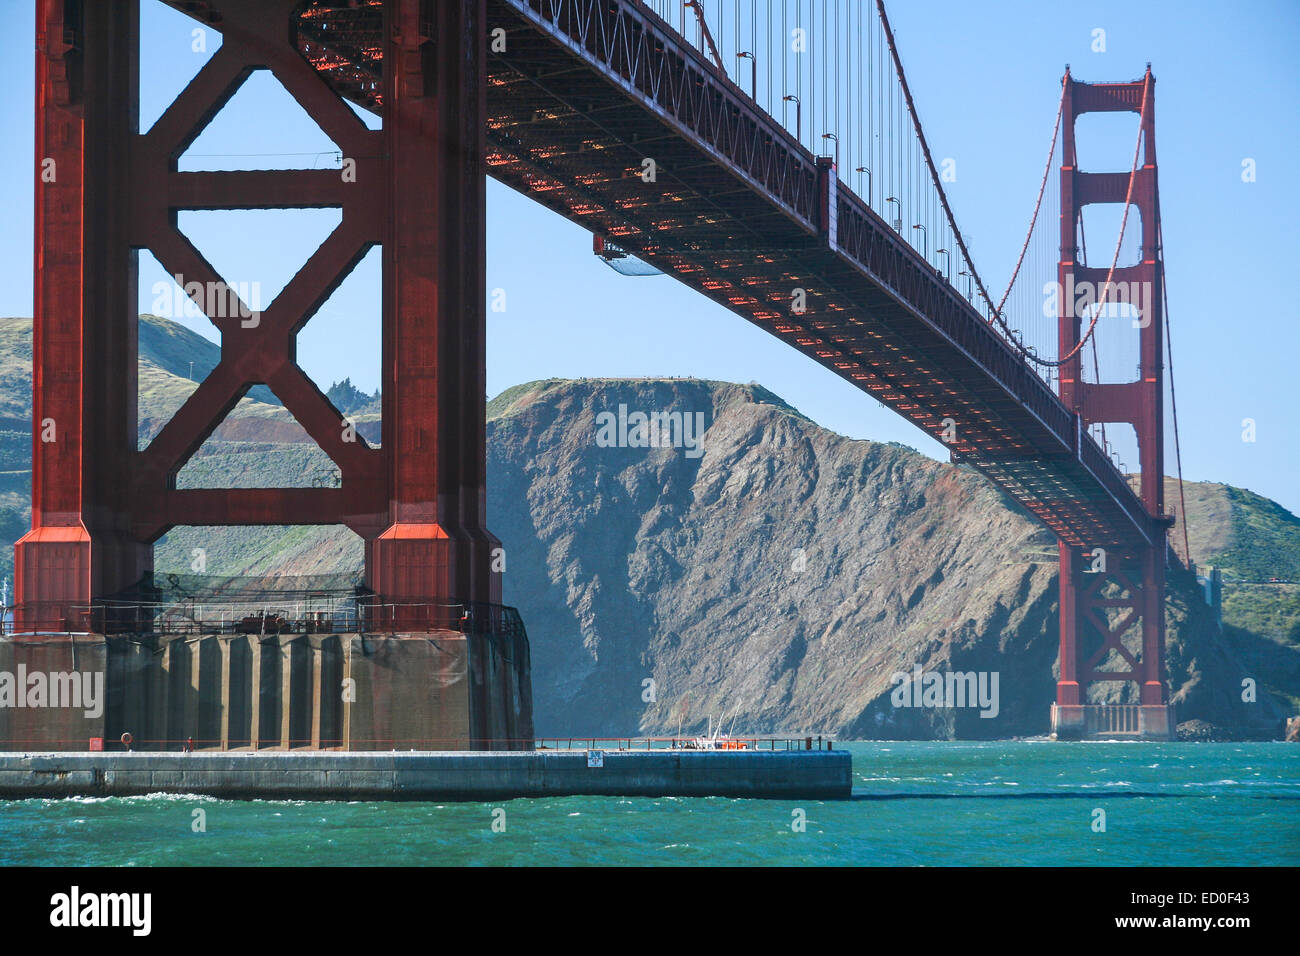 USA, California, San Francisco, Low angle view of Golden Gate Bridge - Stock Image